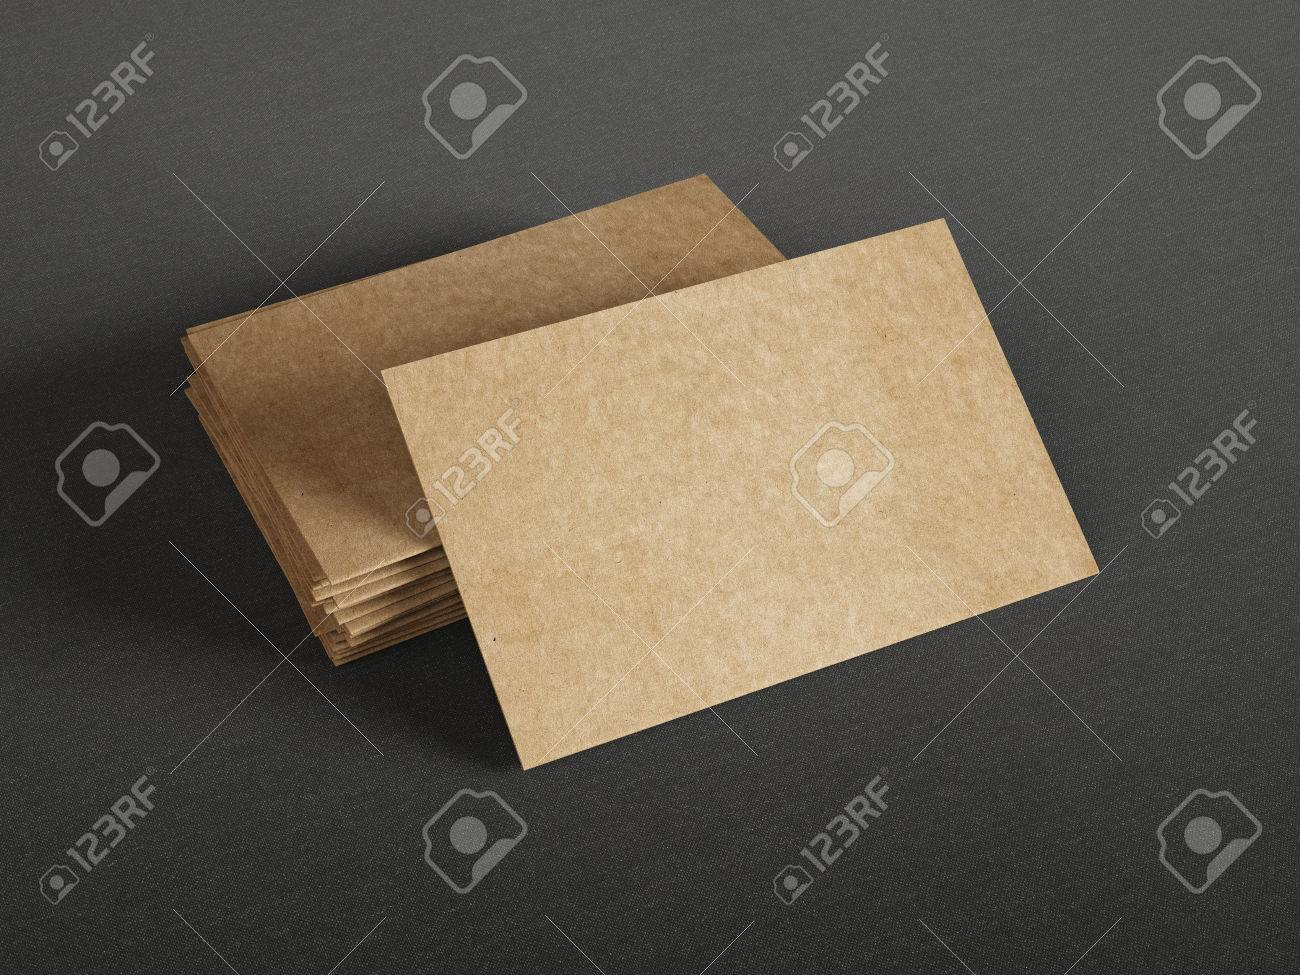 cardboard business cards on dark background stock photo picture